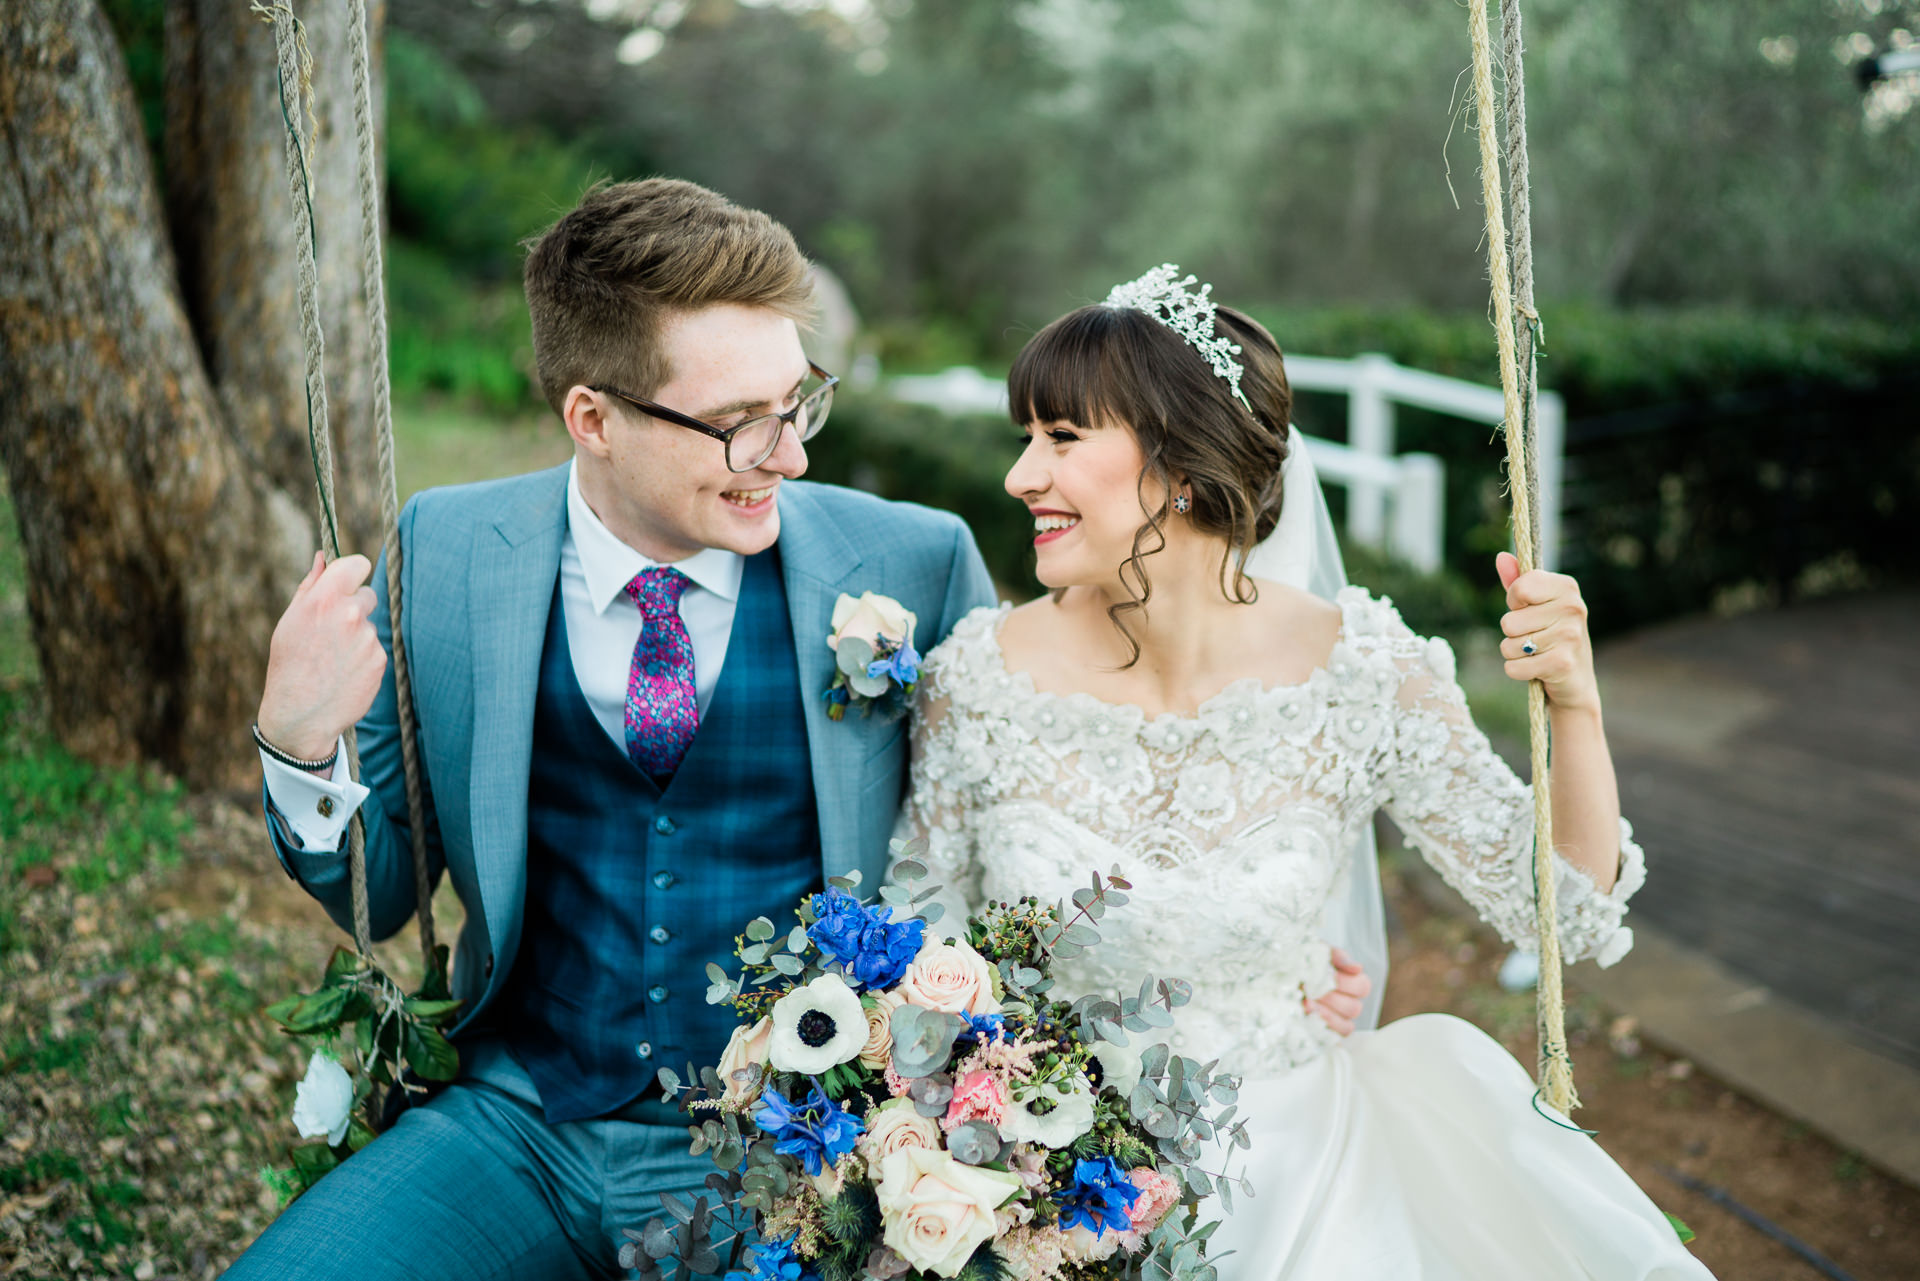 Bride and groom smiling on a swing - Fuzzy Pear Studio Blue Mountains Wedding Photography